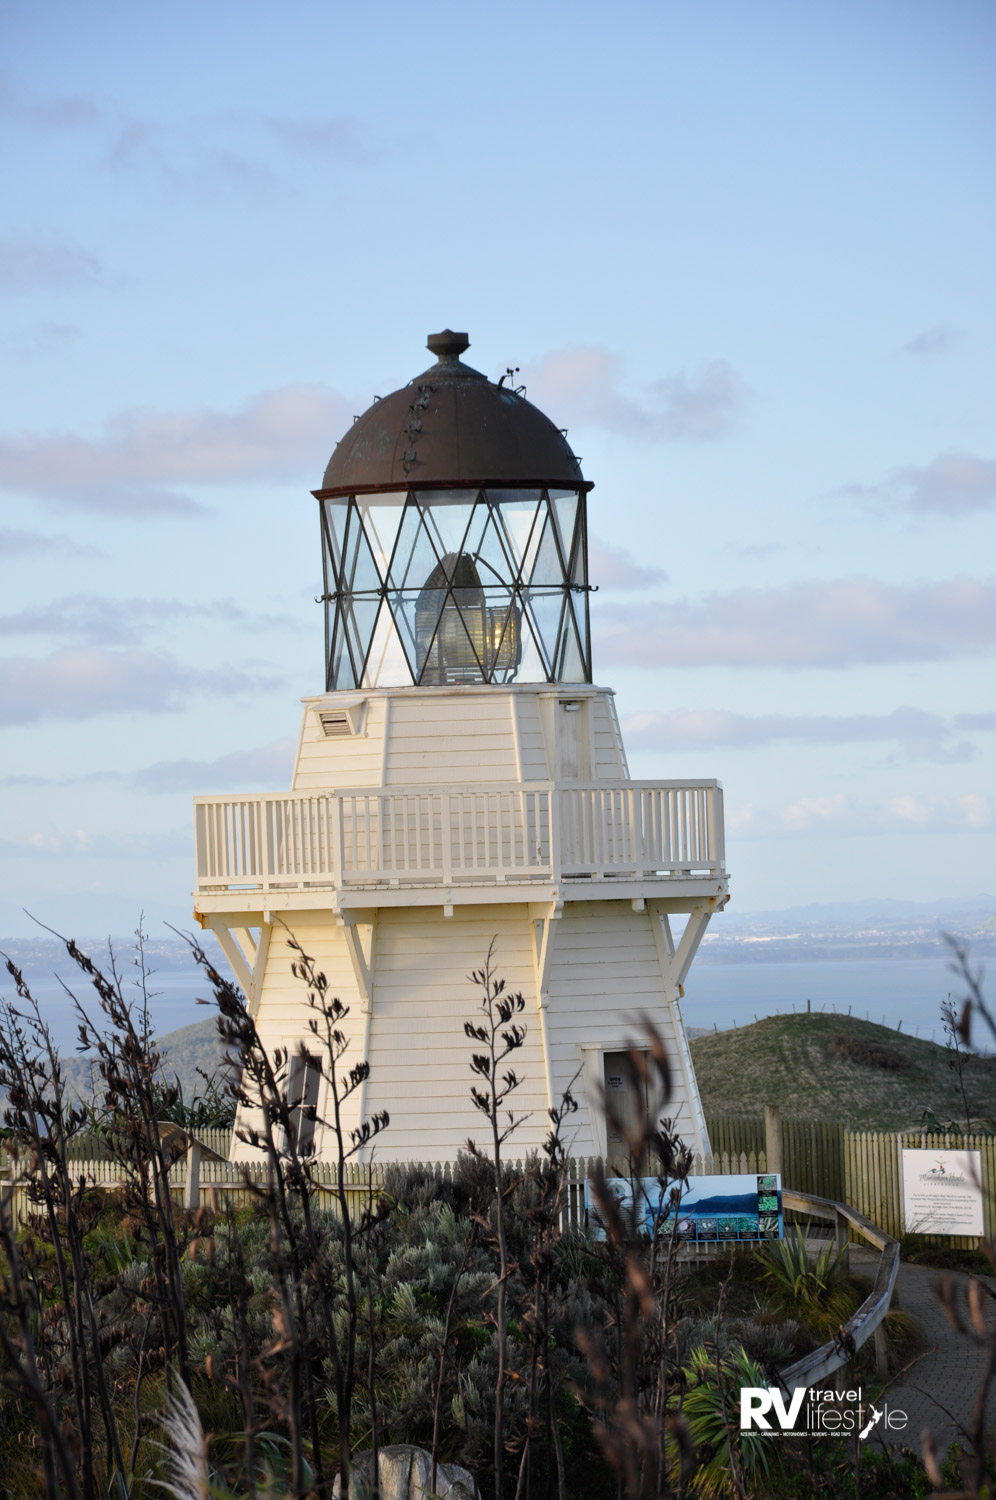 Manukau Heads, the replica lighthouse tells a great local story, and the views to the Manukau Harbour entrance and Heads is worth the trip